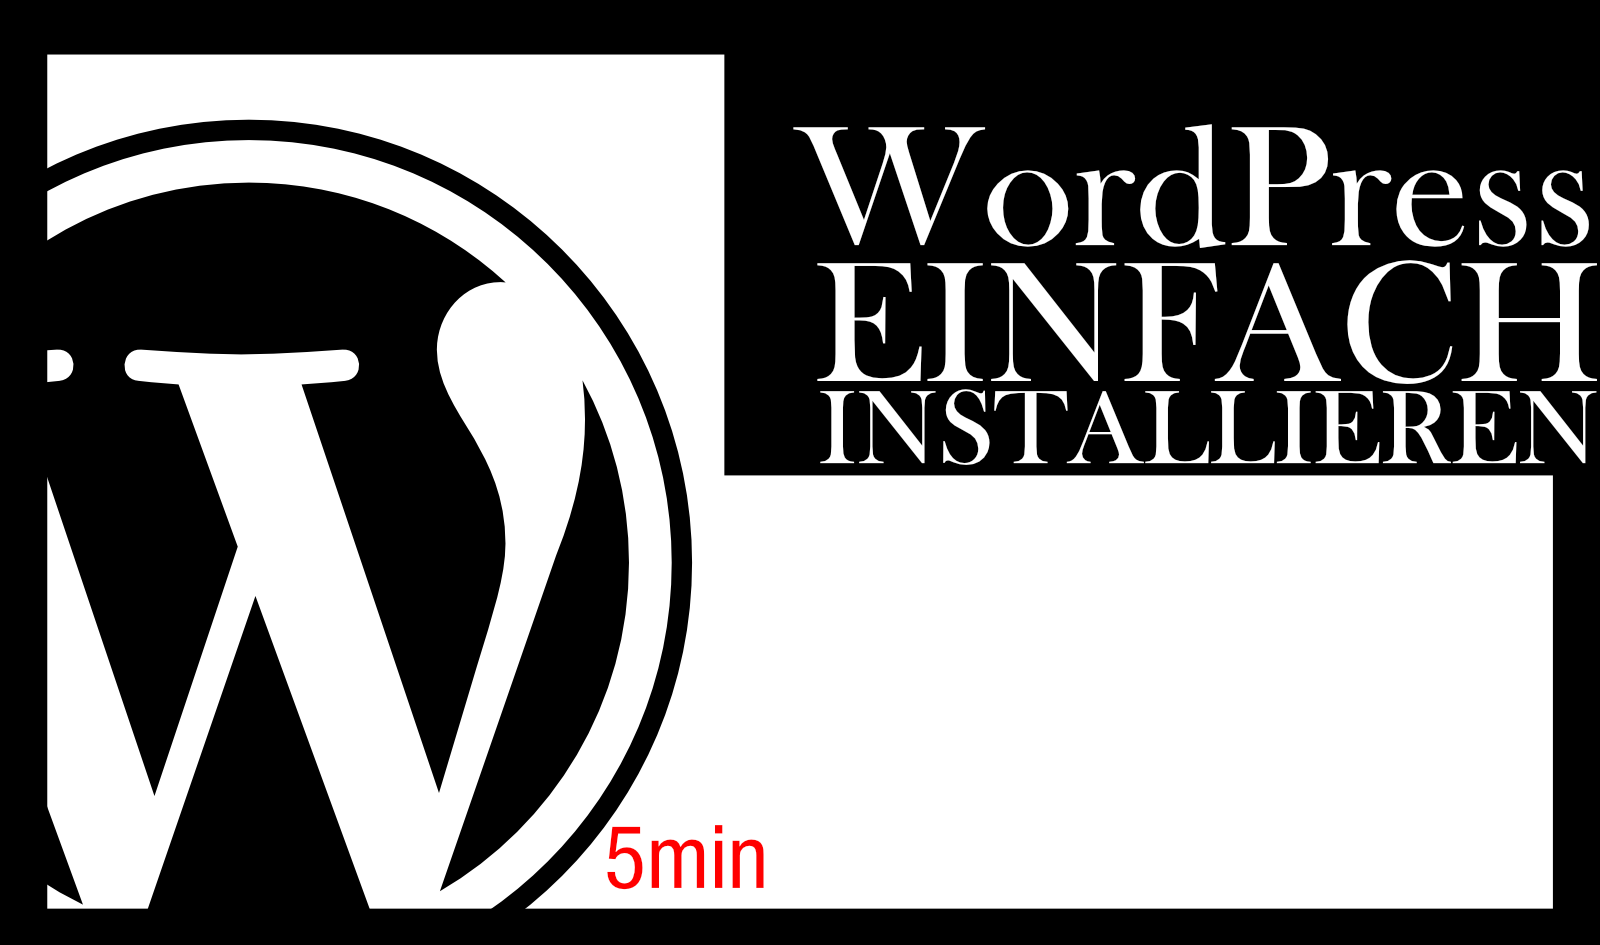 Wordpress installieren - Das komplette Tutorial